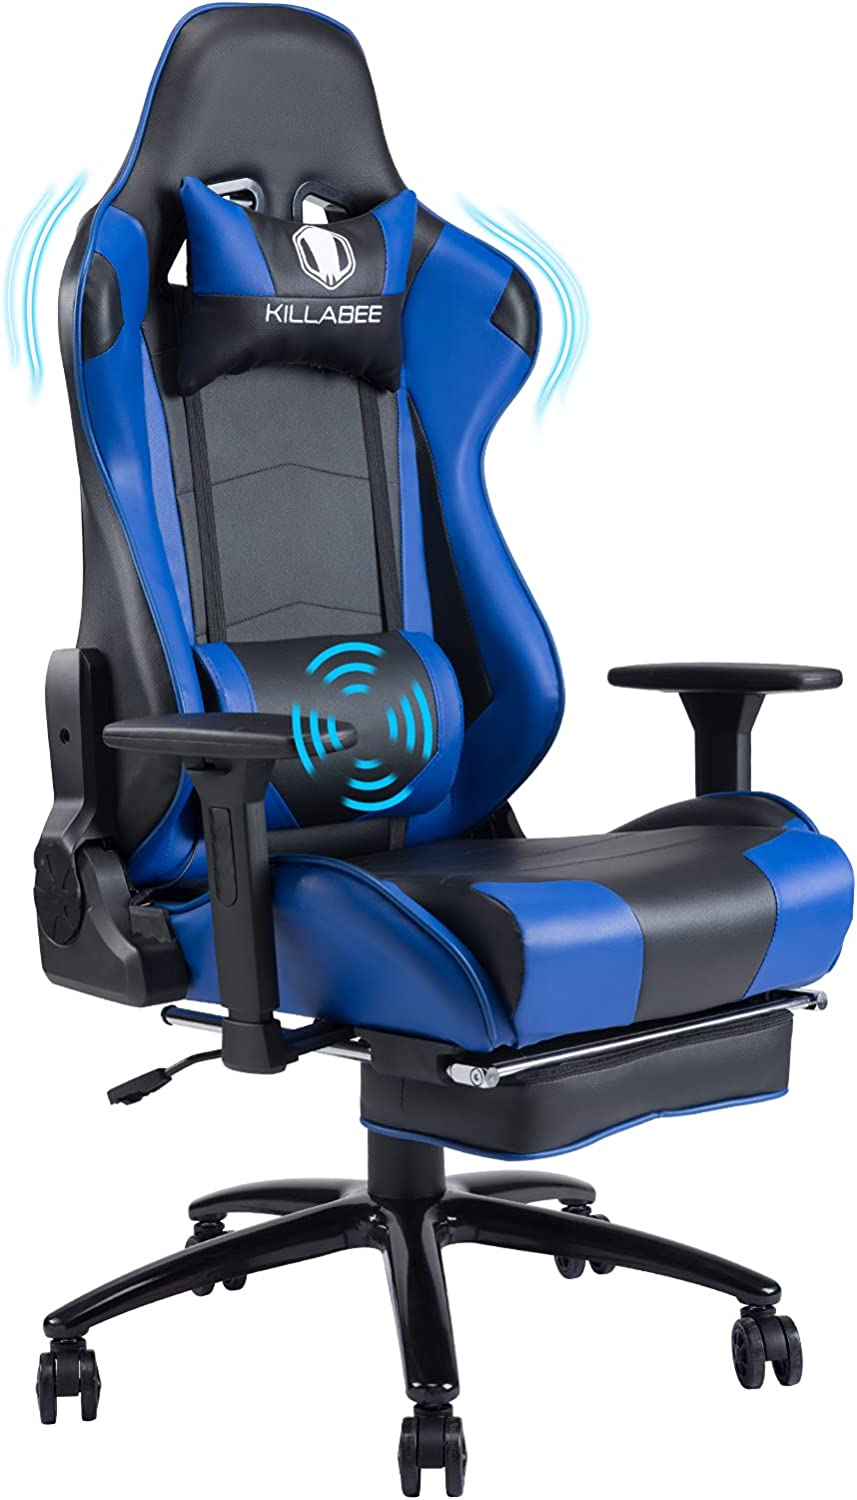 Massage Computer Gaming Tulsa New Orleans Mall Mall Chair with Base and Metal Footrest Thick